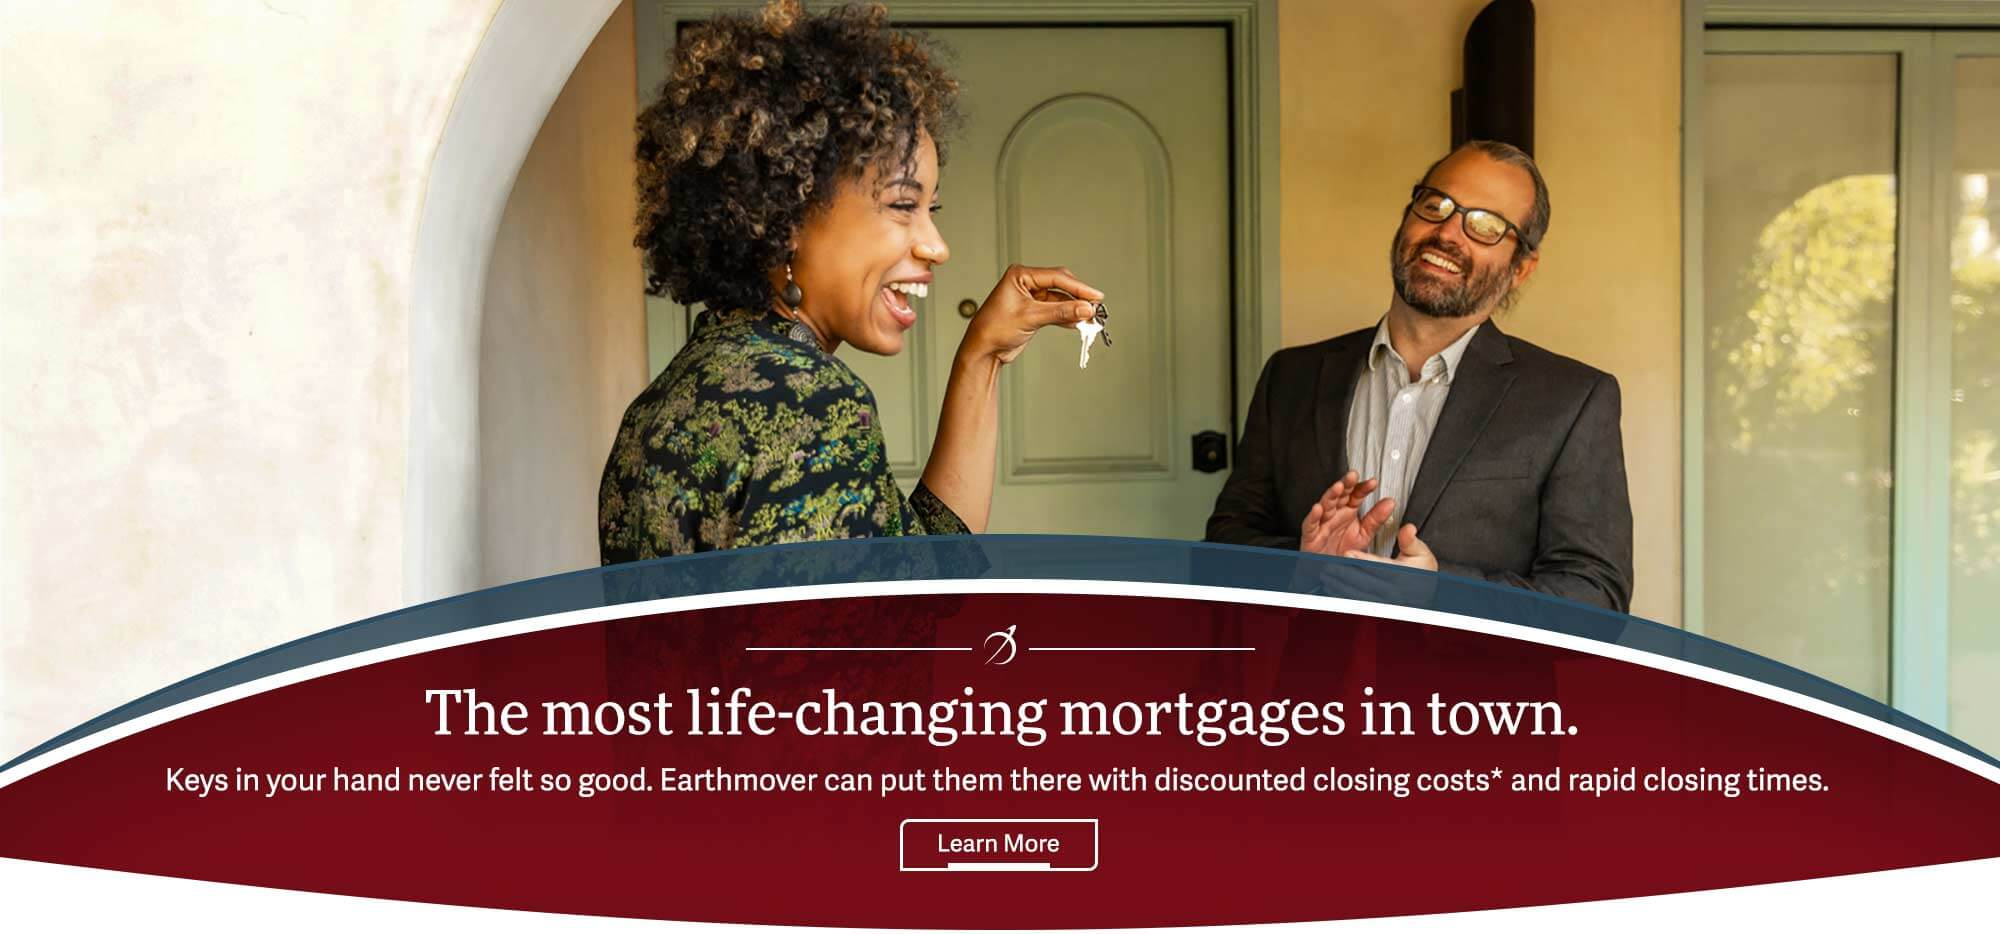 Mortgages-The most life-changing mortgages in town